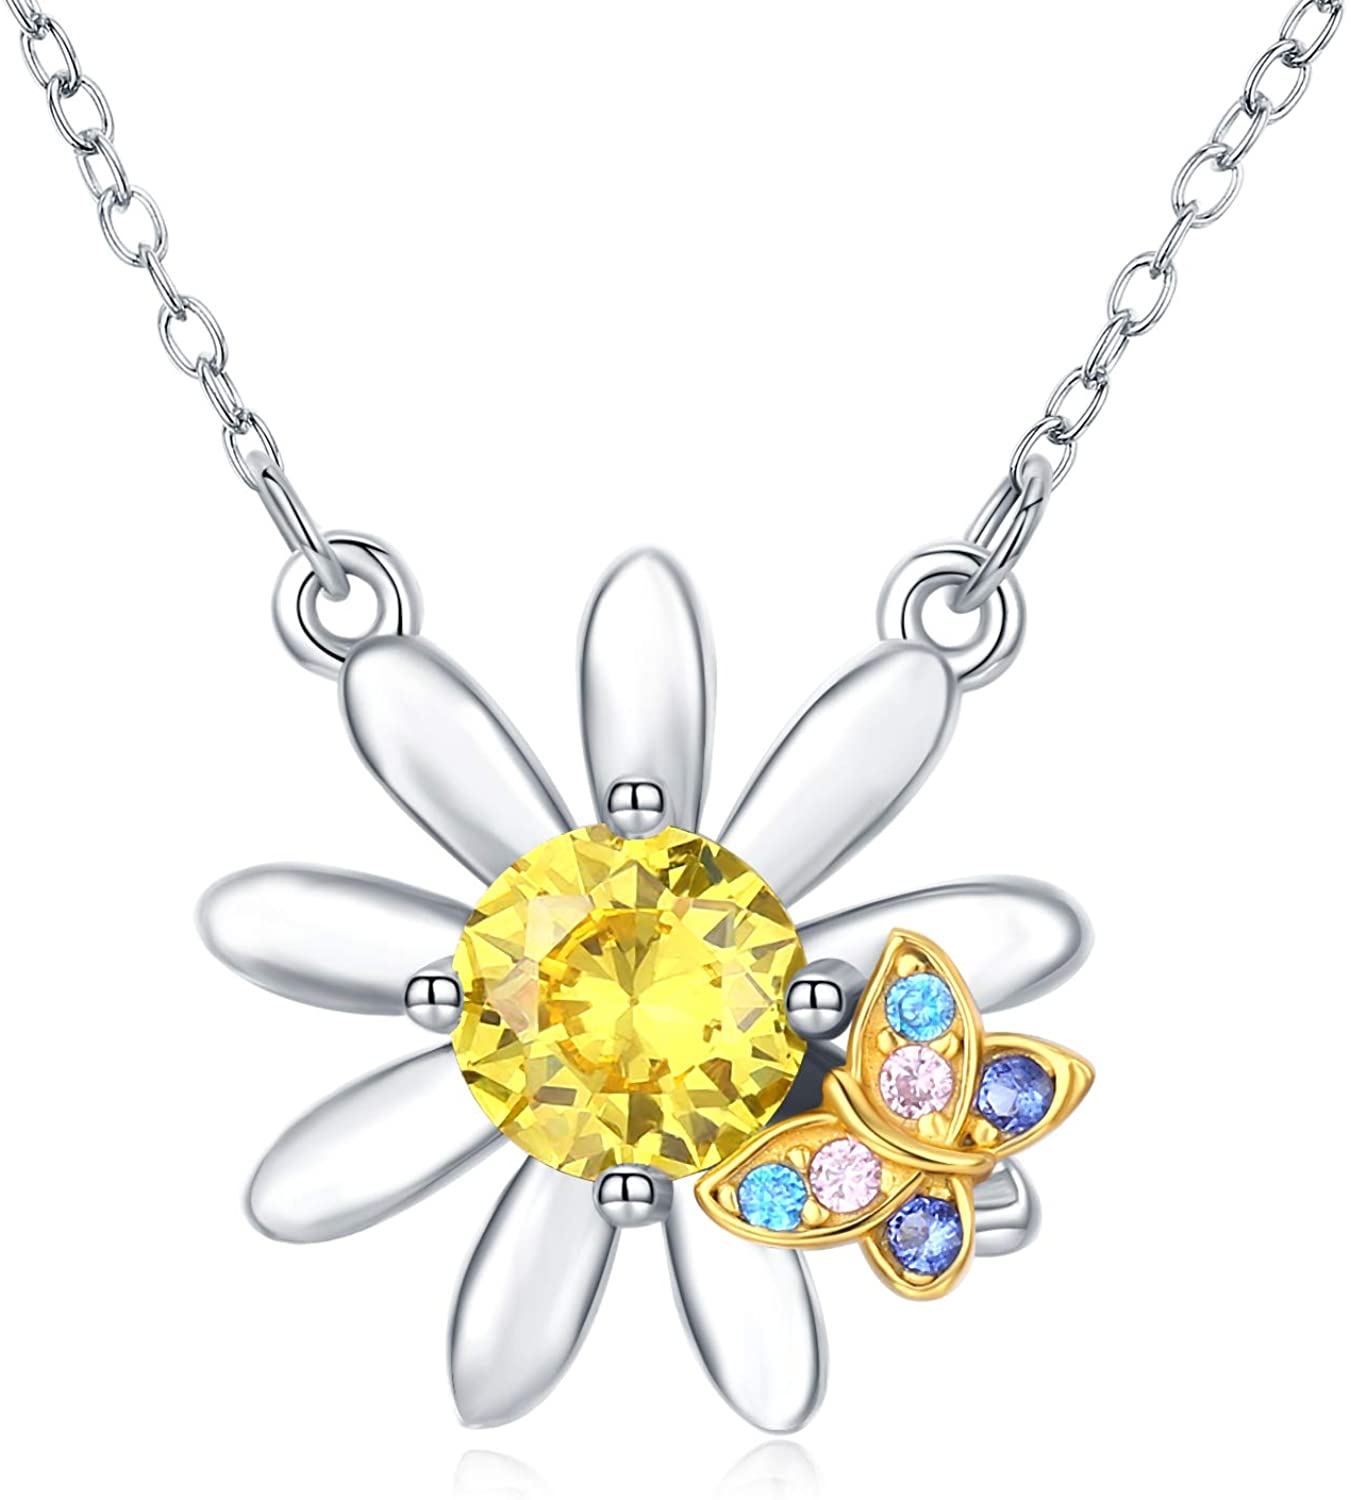 TRISHULA Sunflower Necklace Sterling Silver You are My Sunshine Butterfly Necklace Sun Flower Daisy Jewelry Gifts for Women Mom Girlfriends